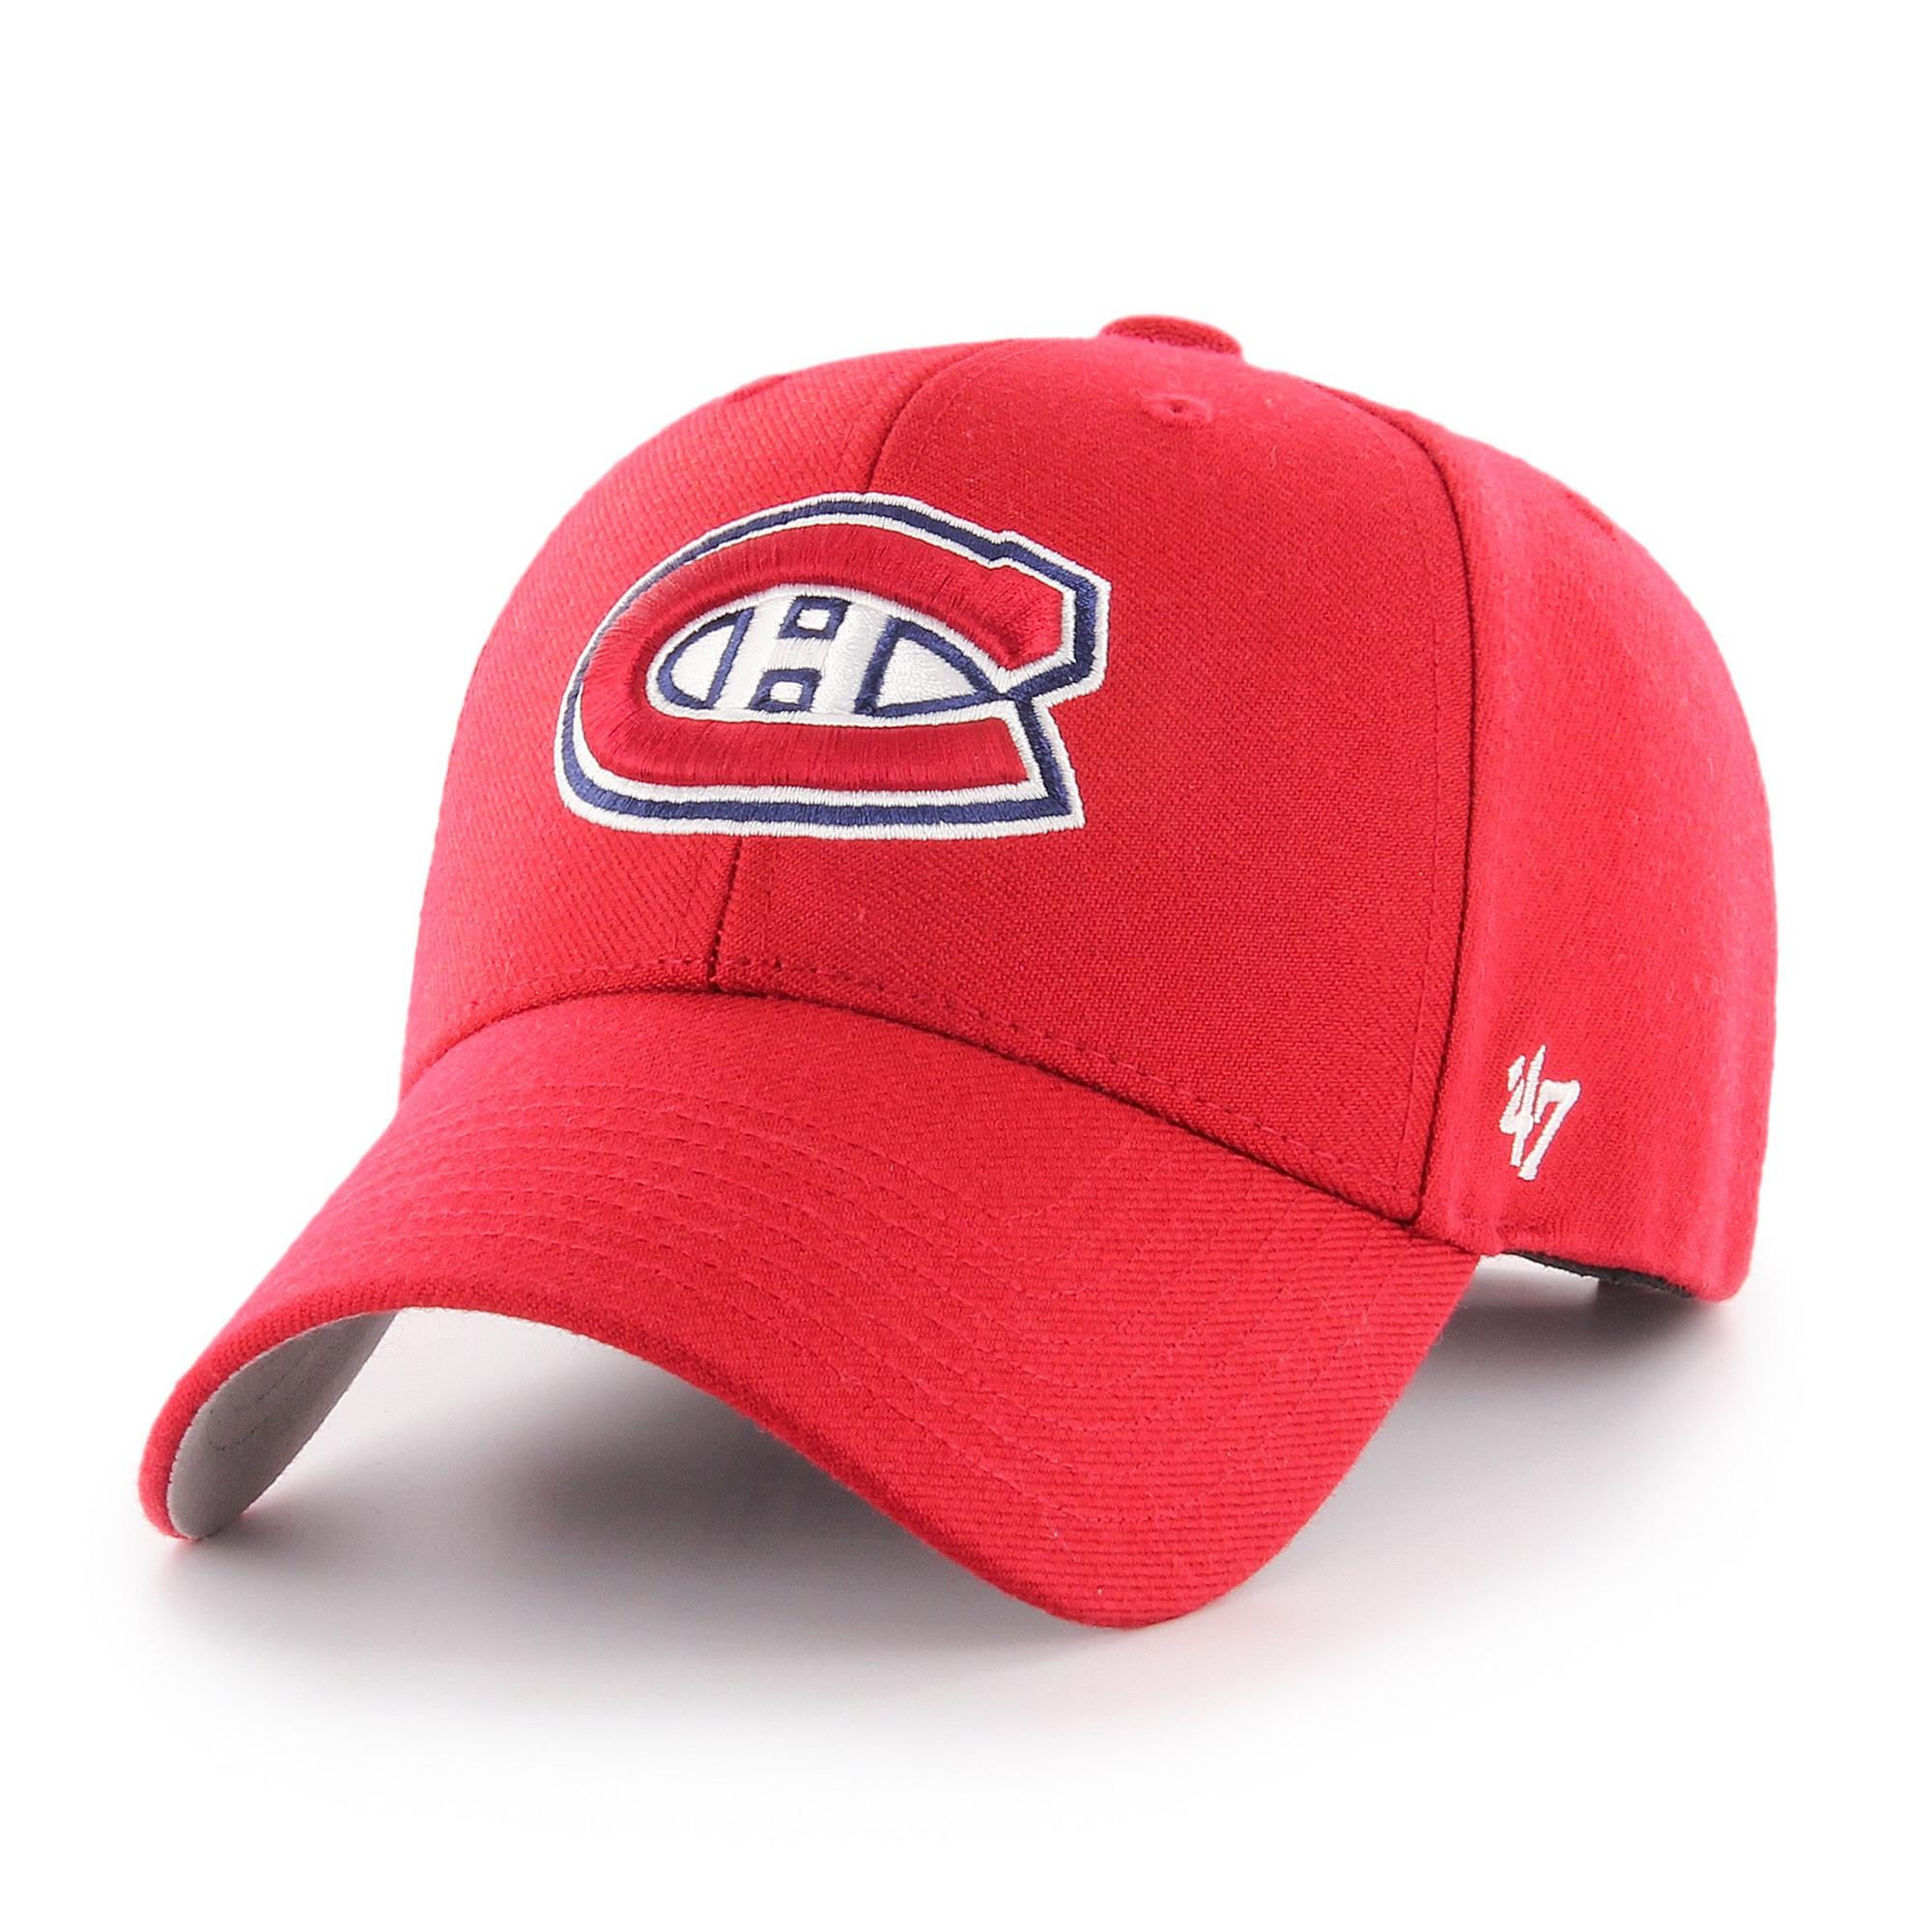 Men's Montreal Canadiens Basic 47 MVP Cap